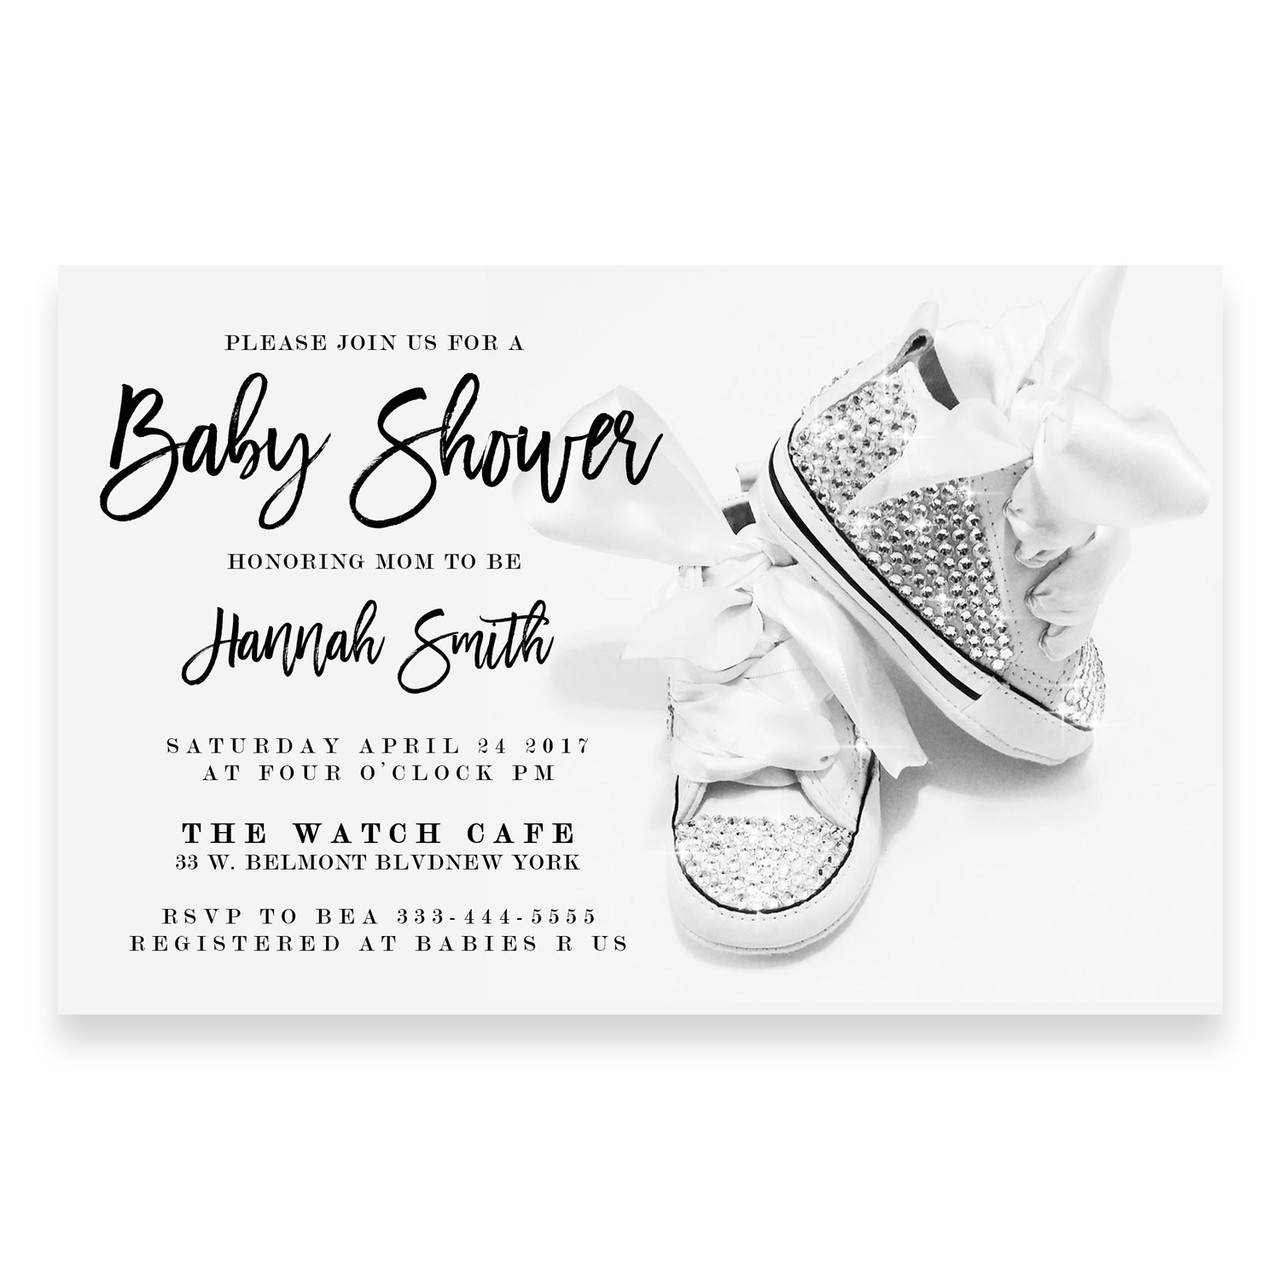 Rhinestone, swarovski crystal baby shoes, baby shower invitation